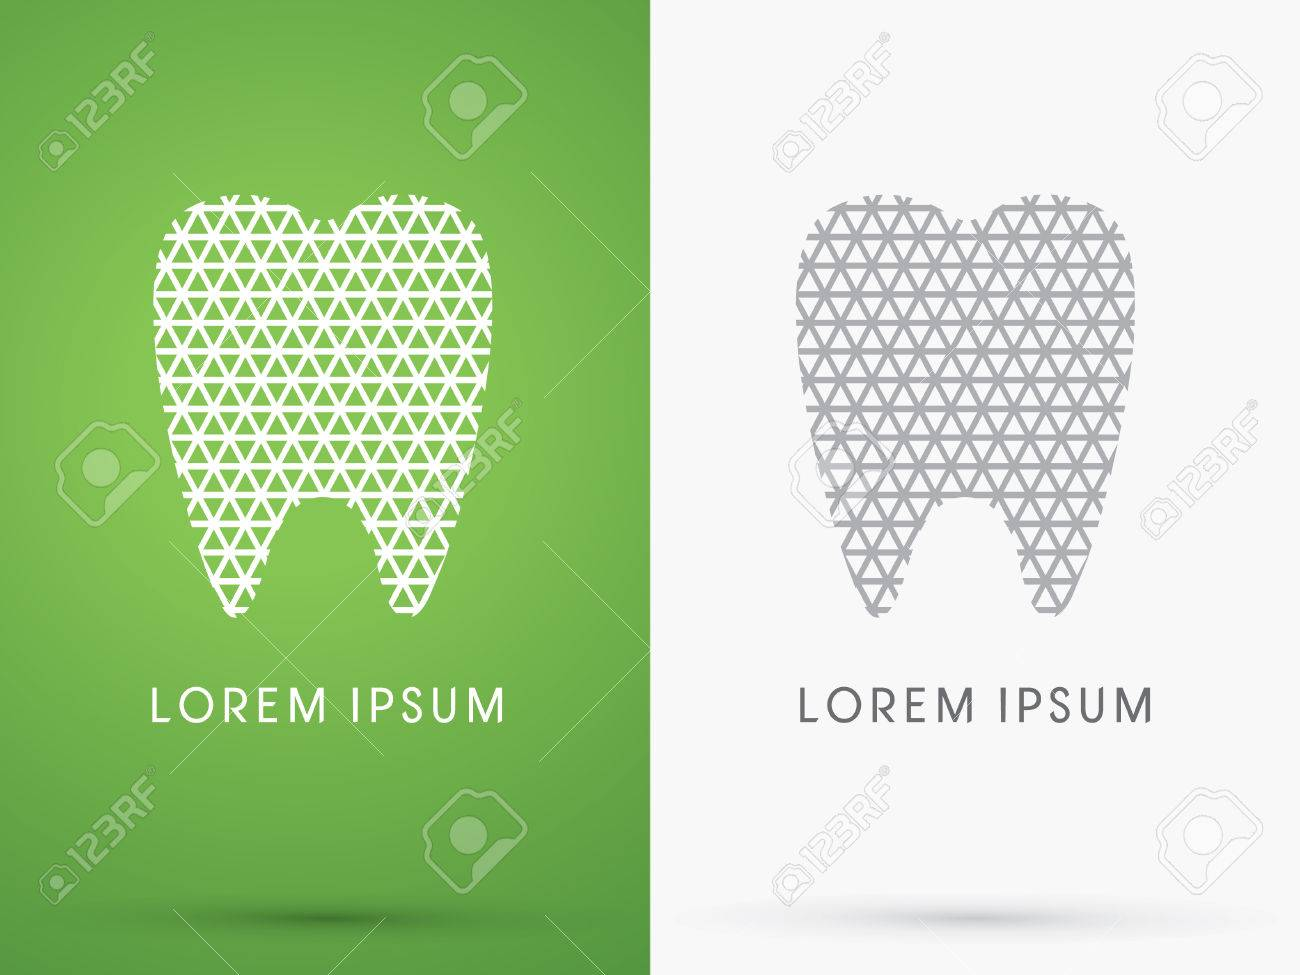 Abstract Tooth, Dental Medicine, Designed Using White Triangle ...